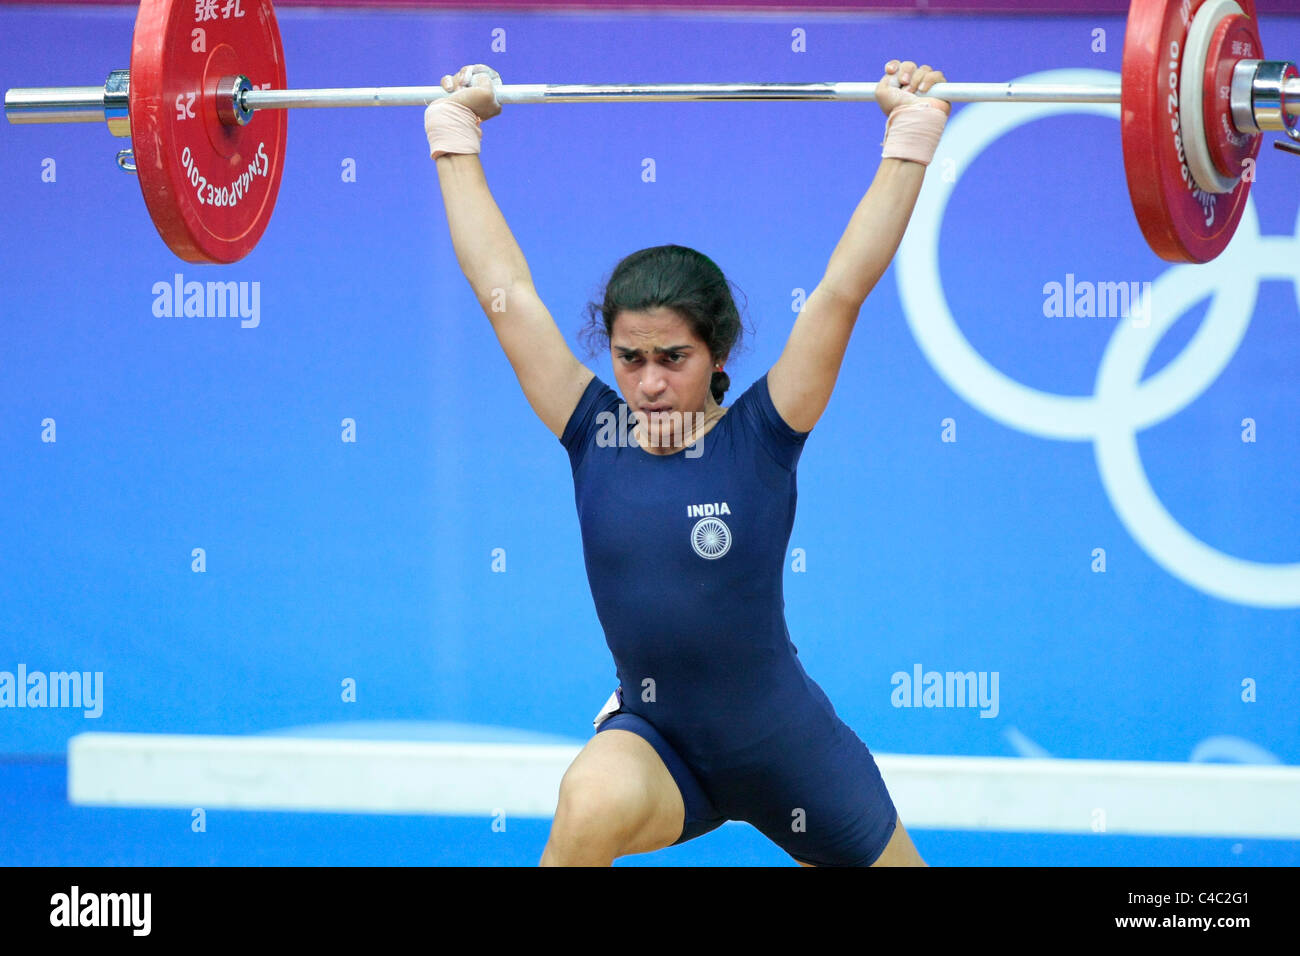 India's Santoshi Matsa in action during her clean and jerk routine. - Stock Image